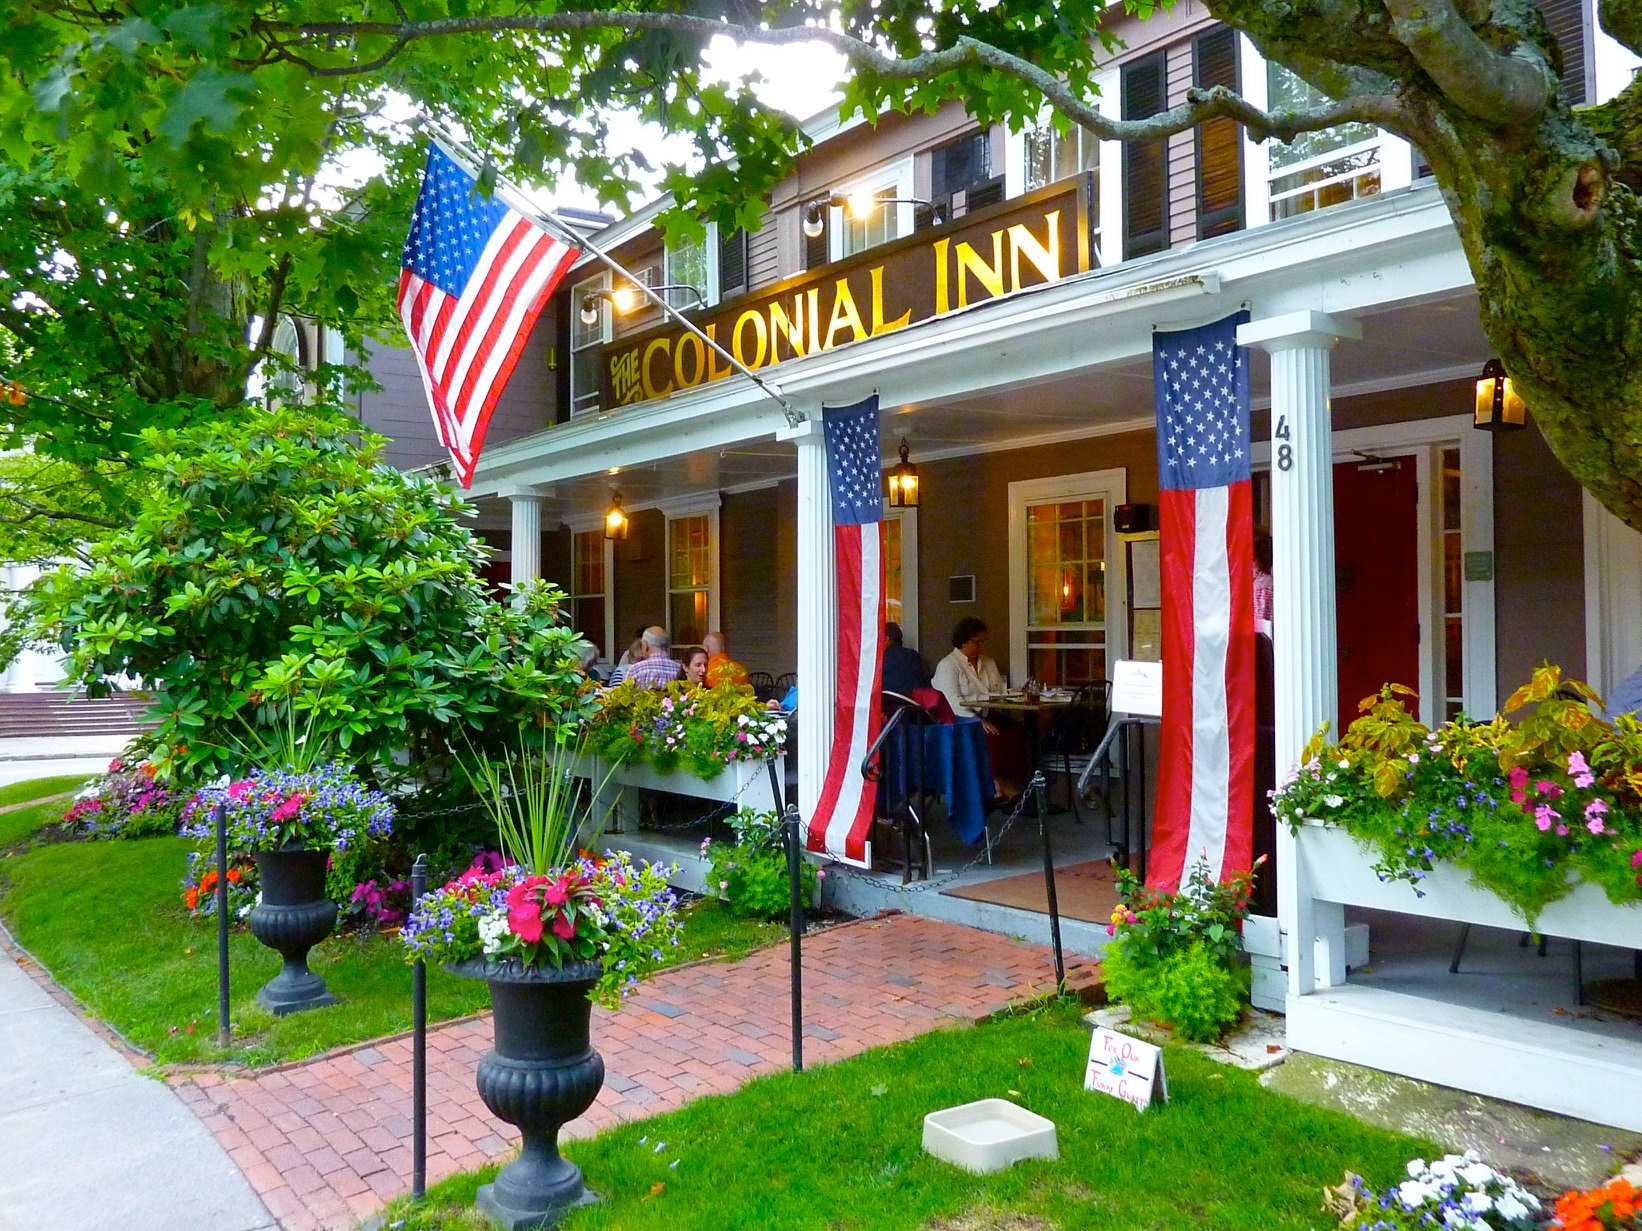 Colonial Inn at Monument Square in downtown Concord, Massachusetts.